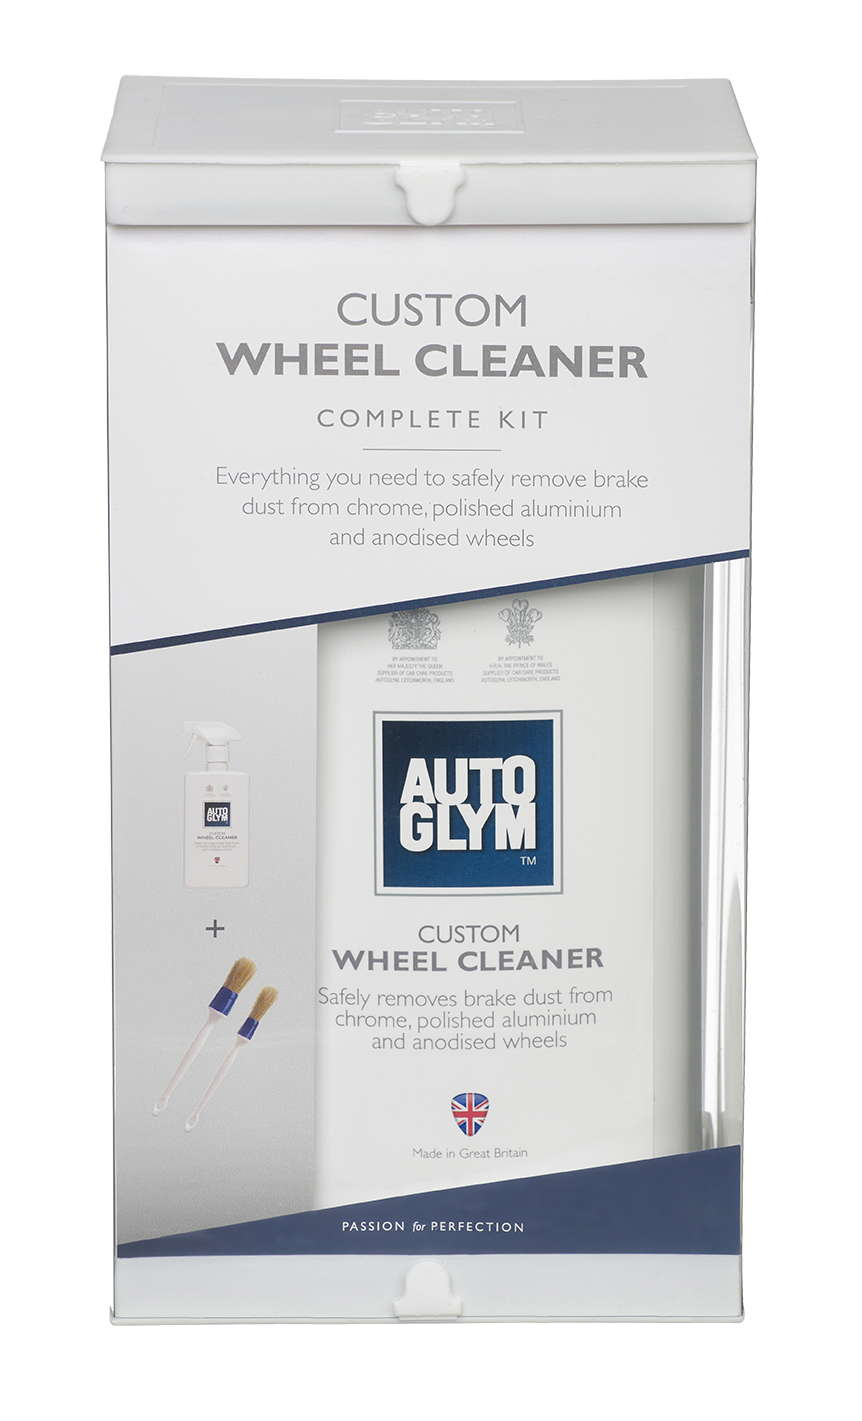 custom-wheel-cleaner-complete-kit-front_lowres